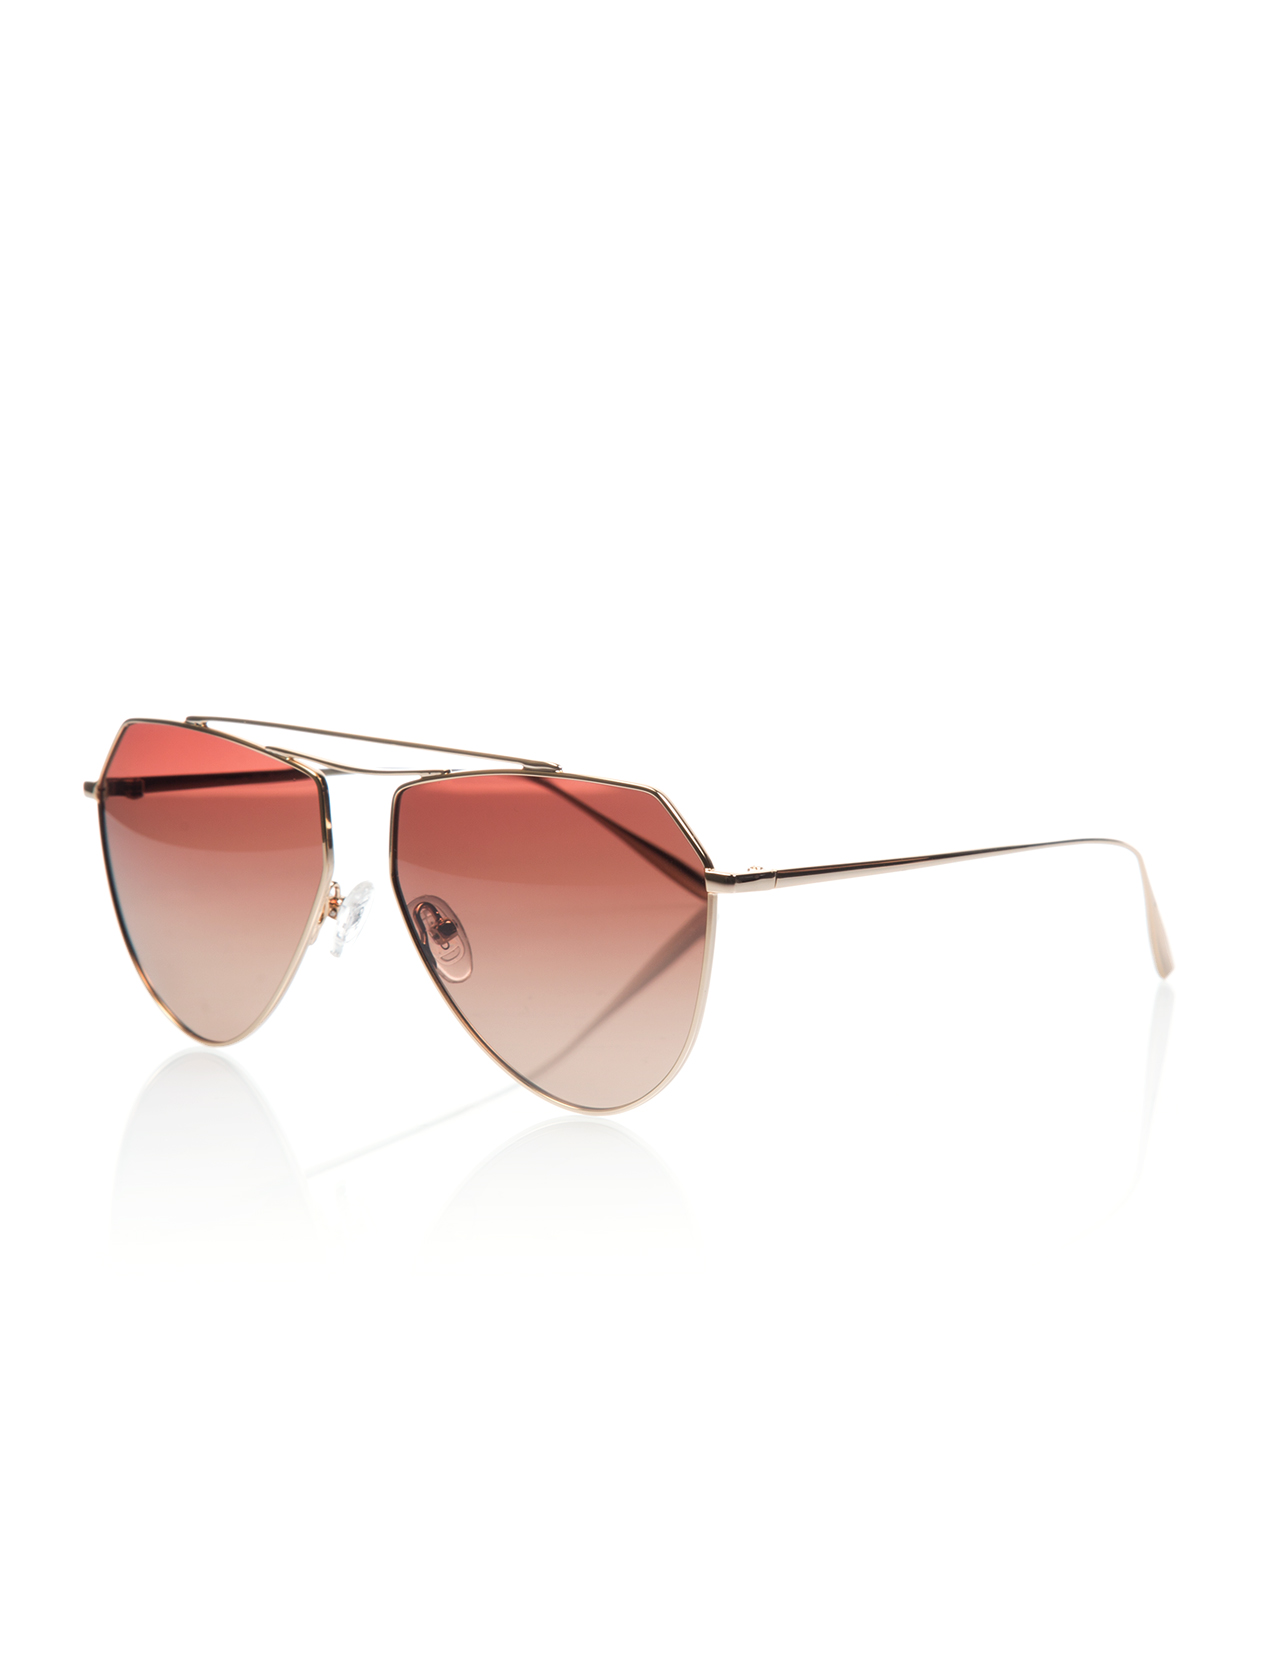 Women's sunglasses os 2372 04 metal yellow unspecified 58 -- osse